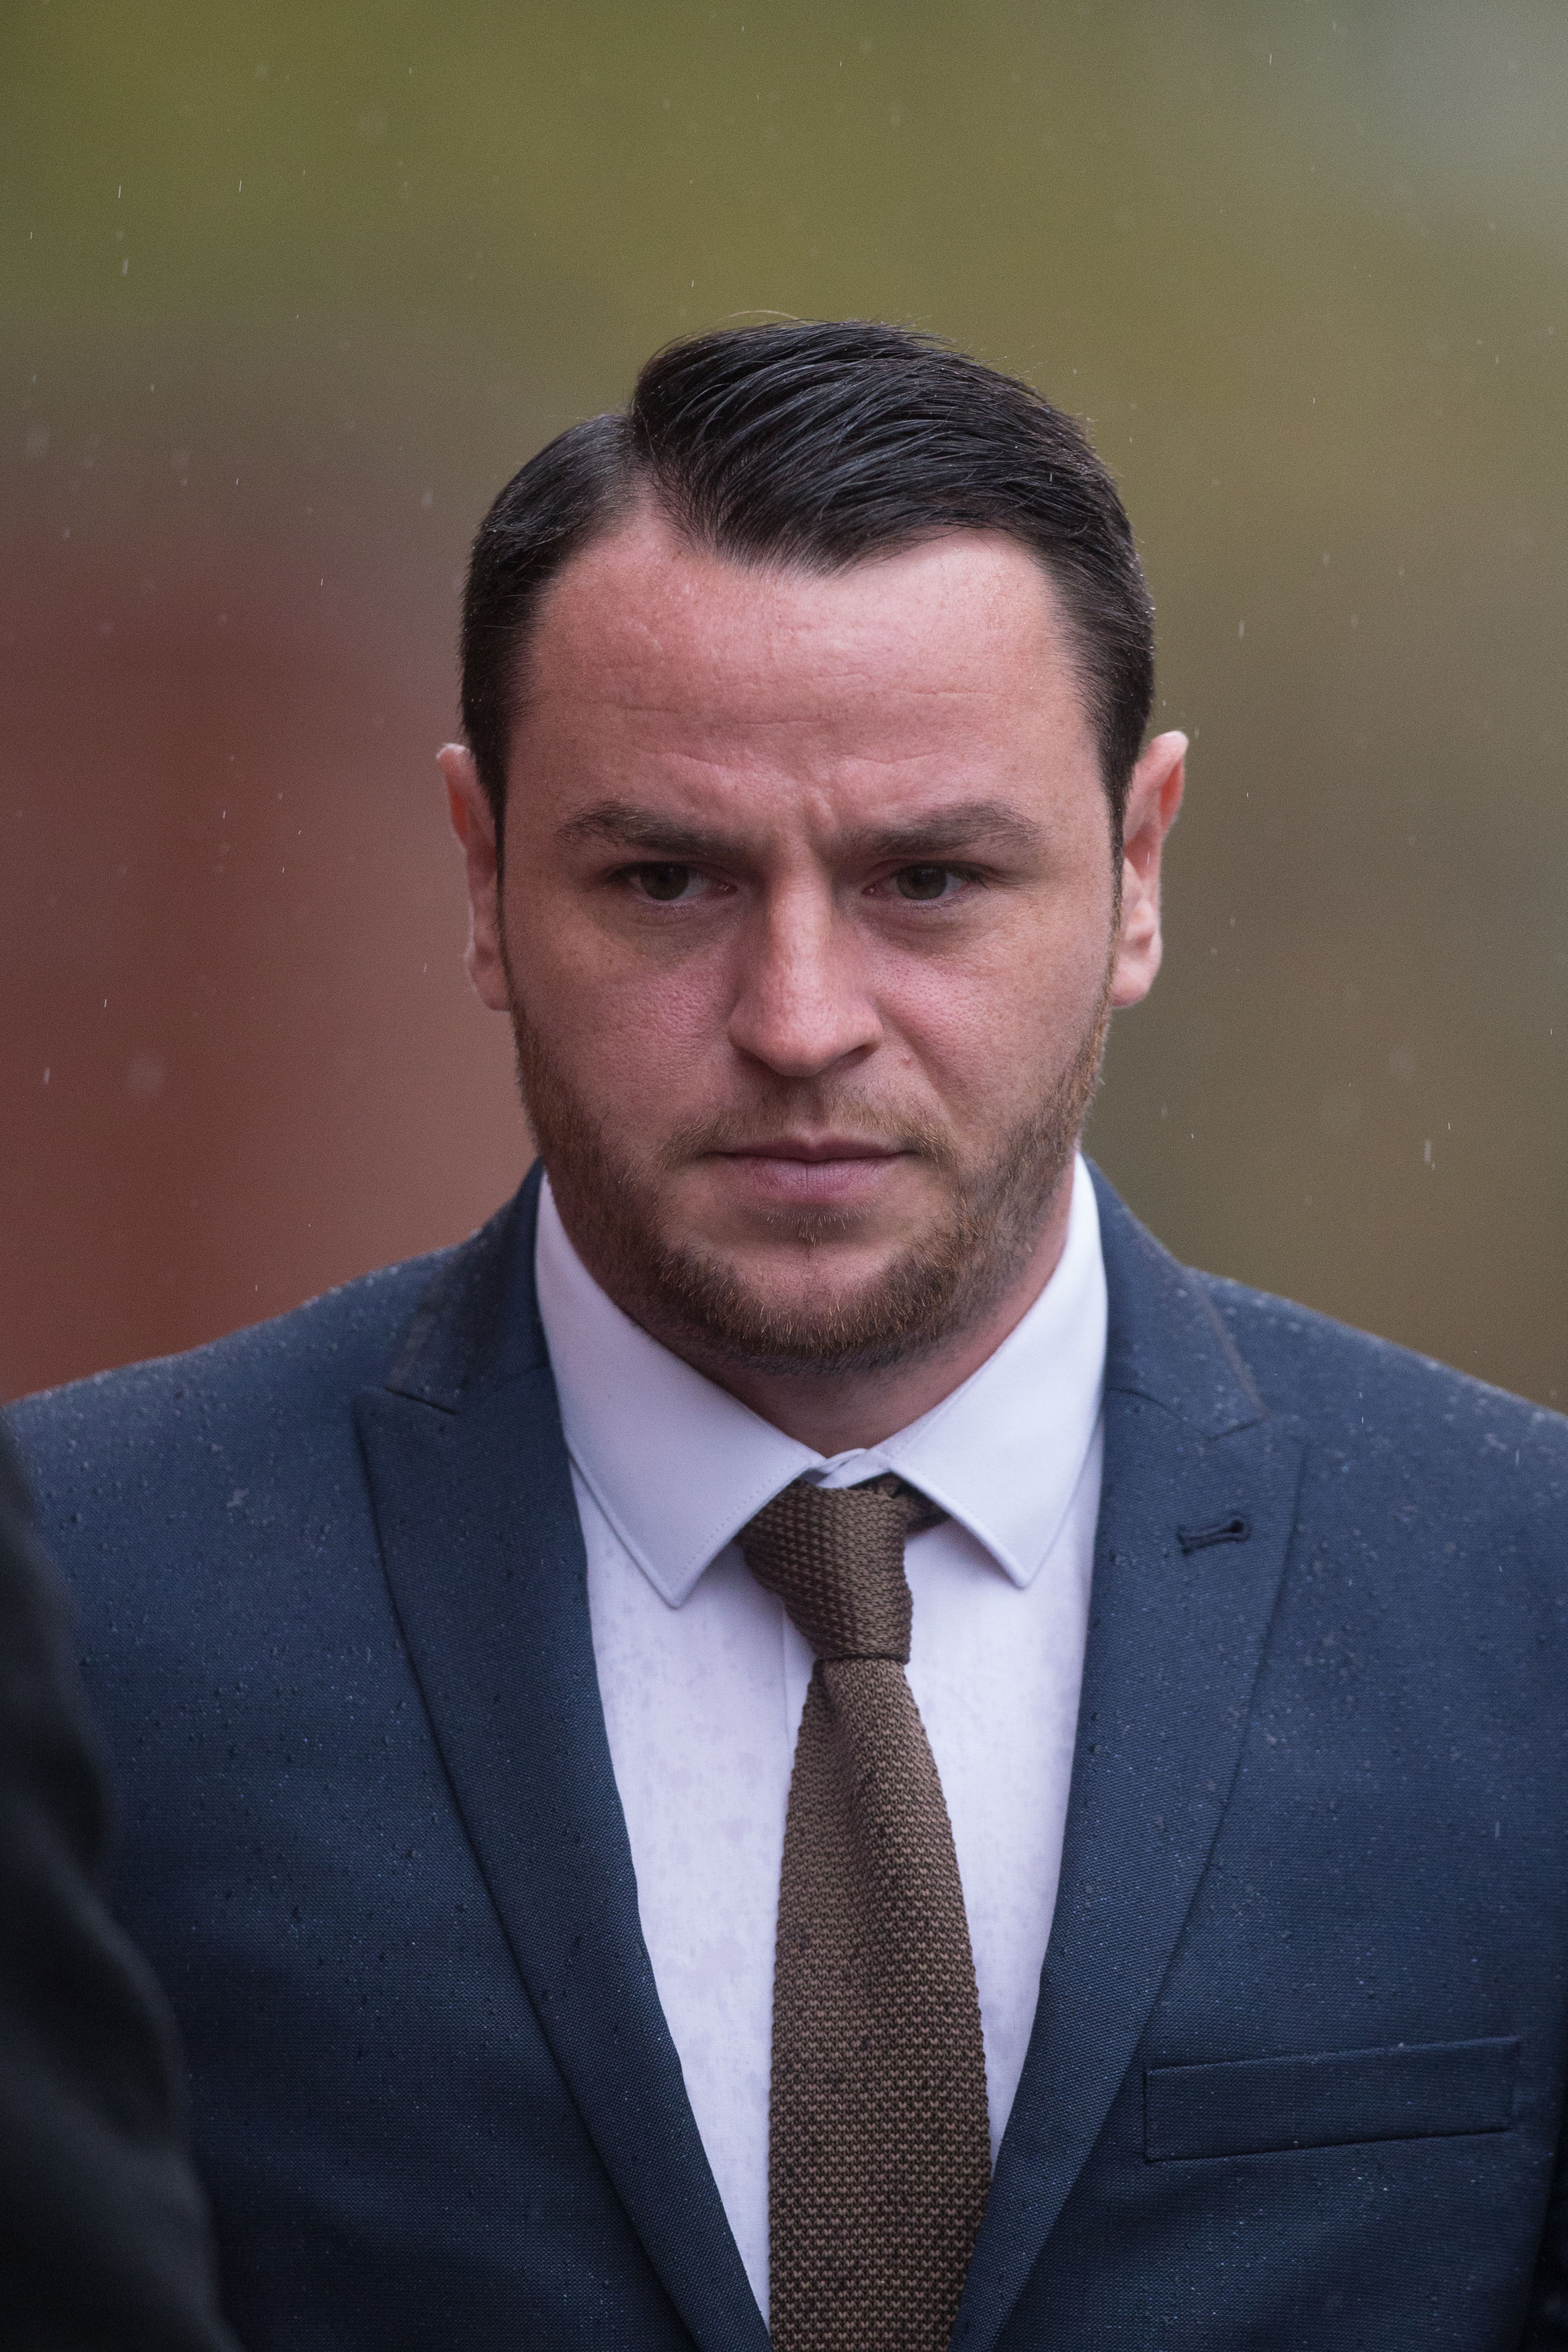 Ex Boro striker Lee Tomlin, 28, arriving at Leicester Magistrates' Court where he and League Two striker Billy Kee appeared charged with causing grievous bodily harm following an assault allegation outside a Leicester nightclub. Picture: PA